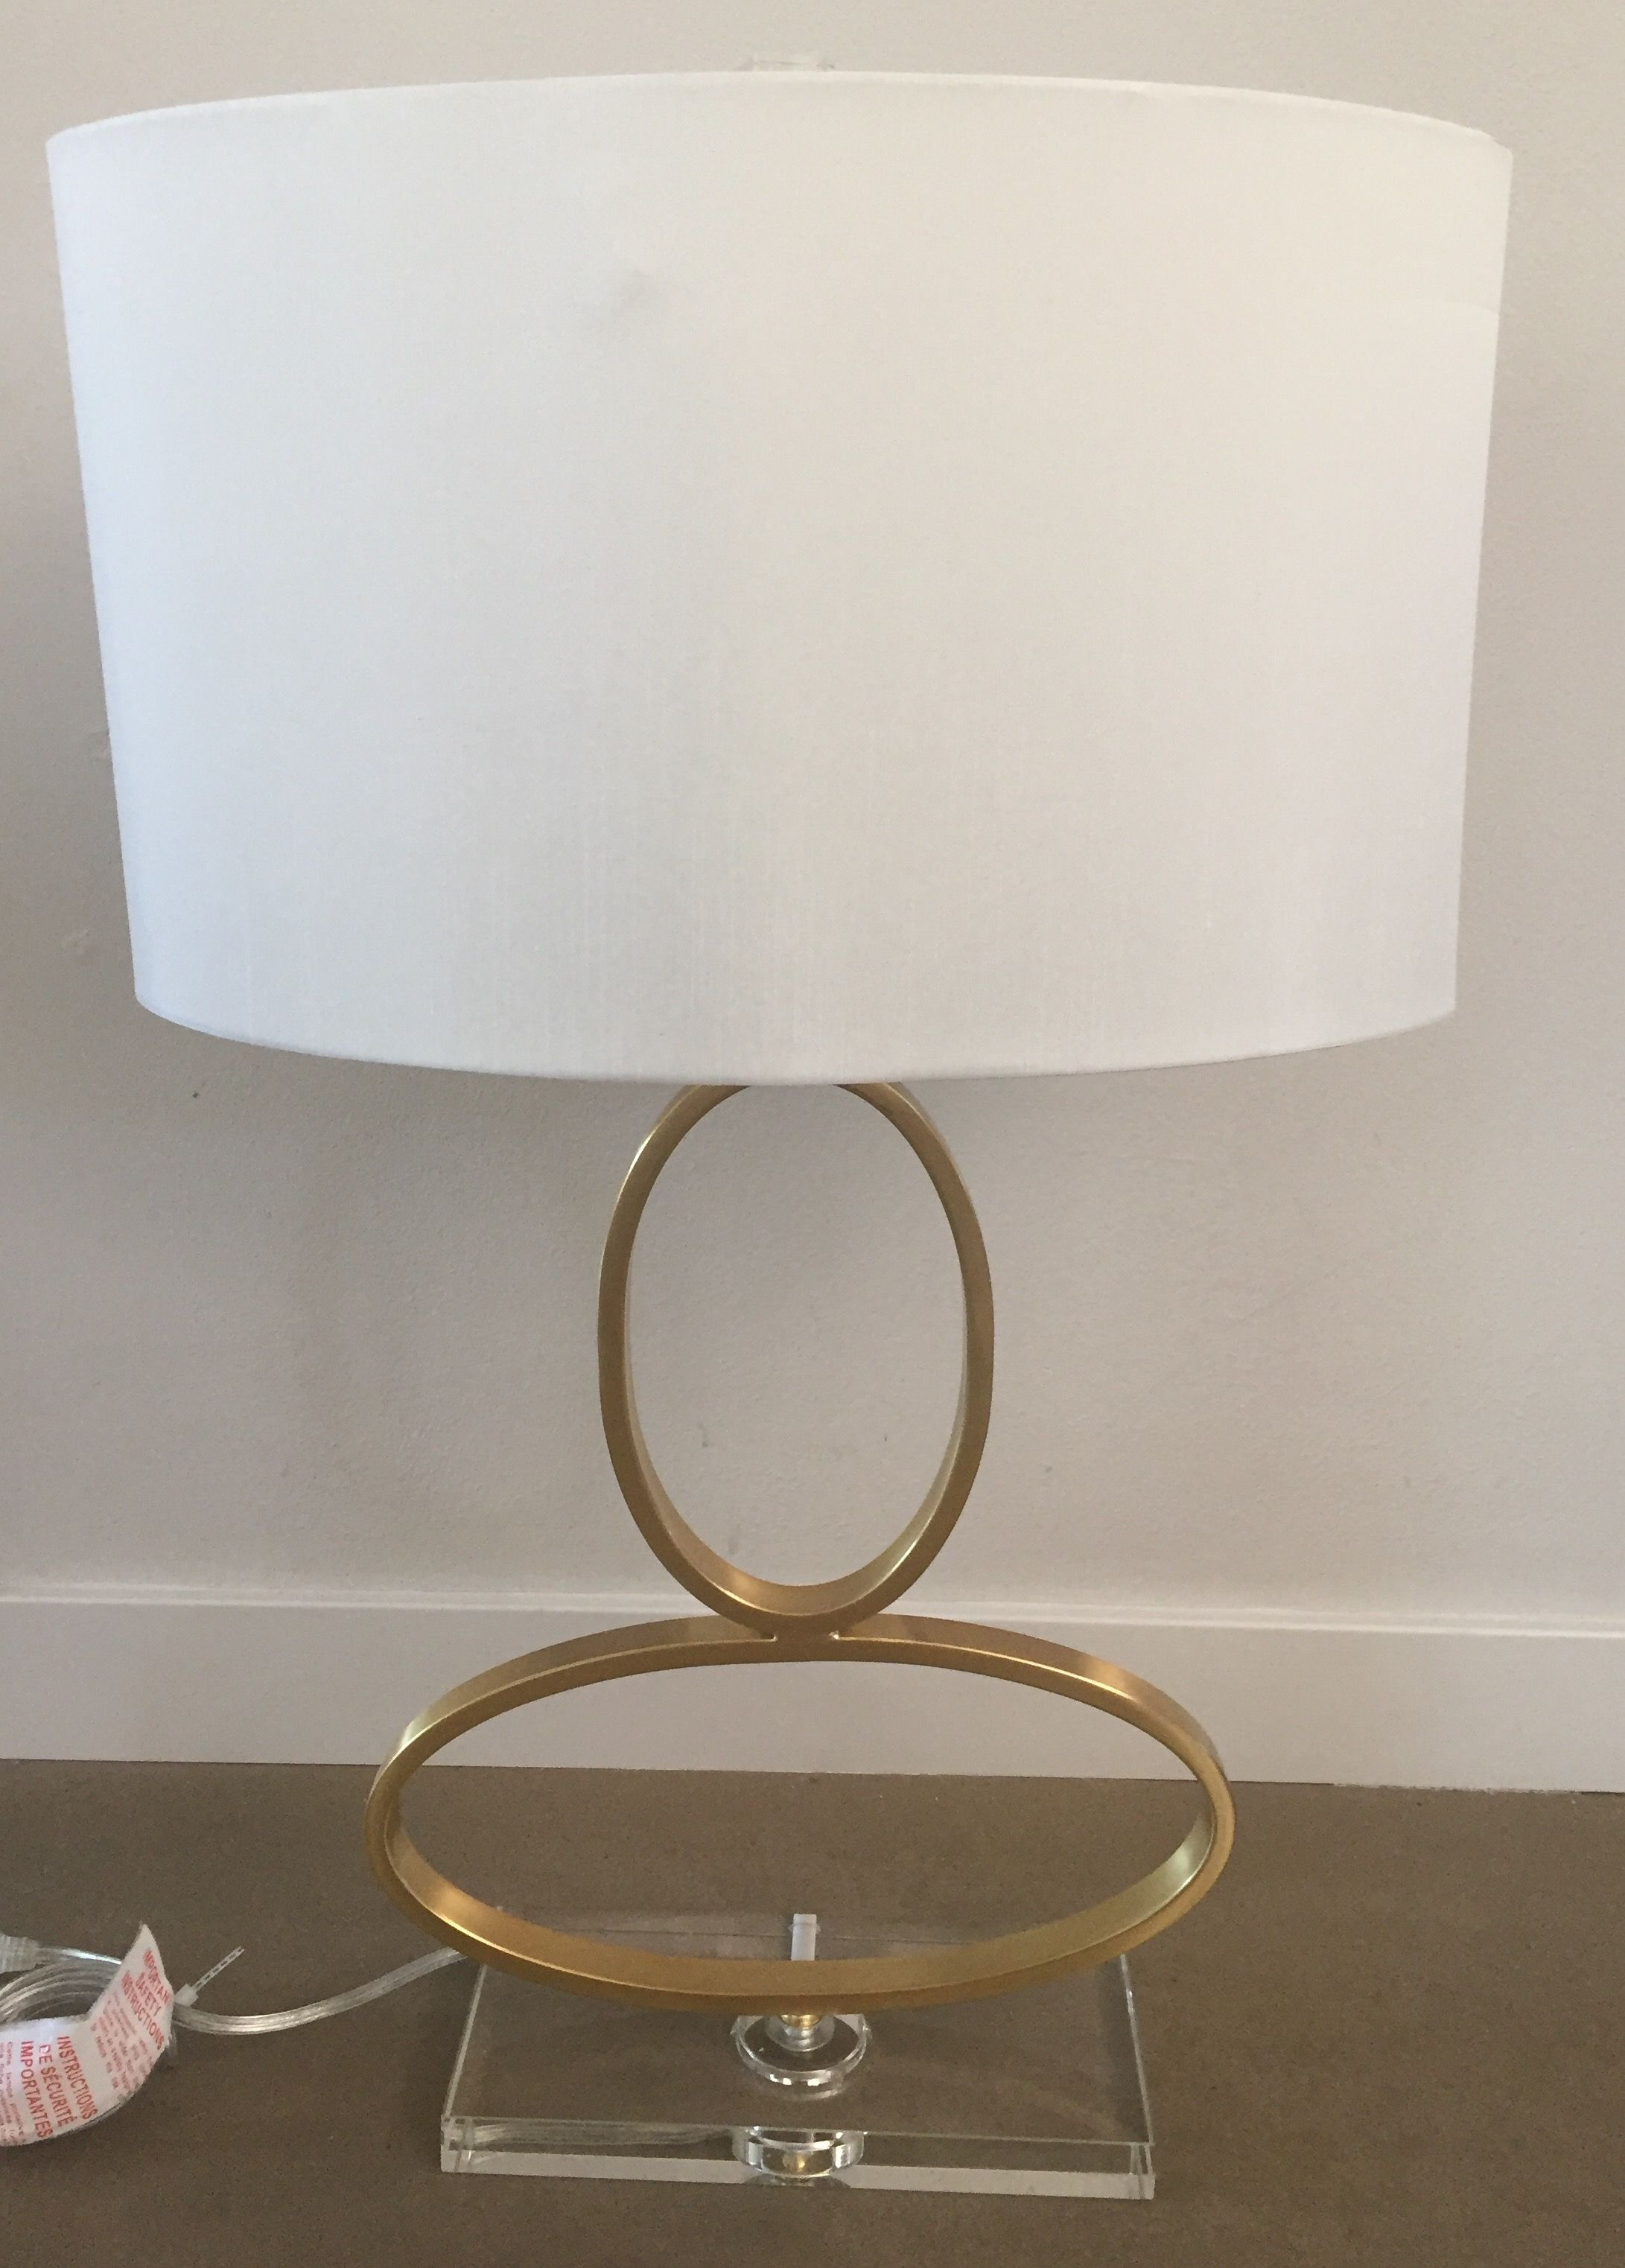 Drexel Heritage Gold Ovals Table Lamp